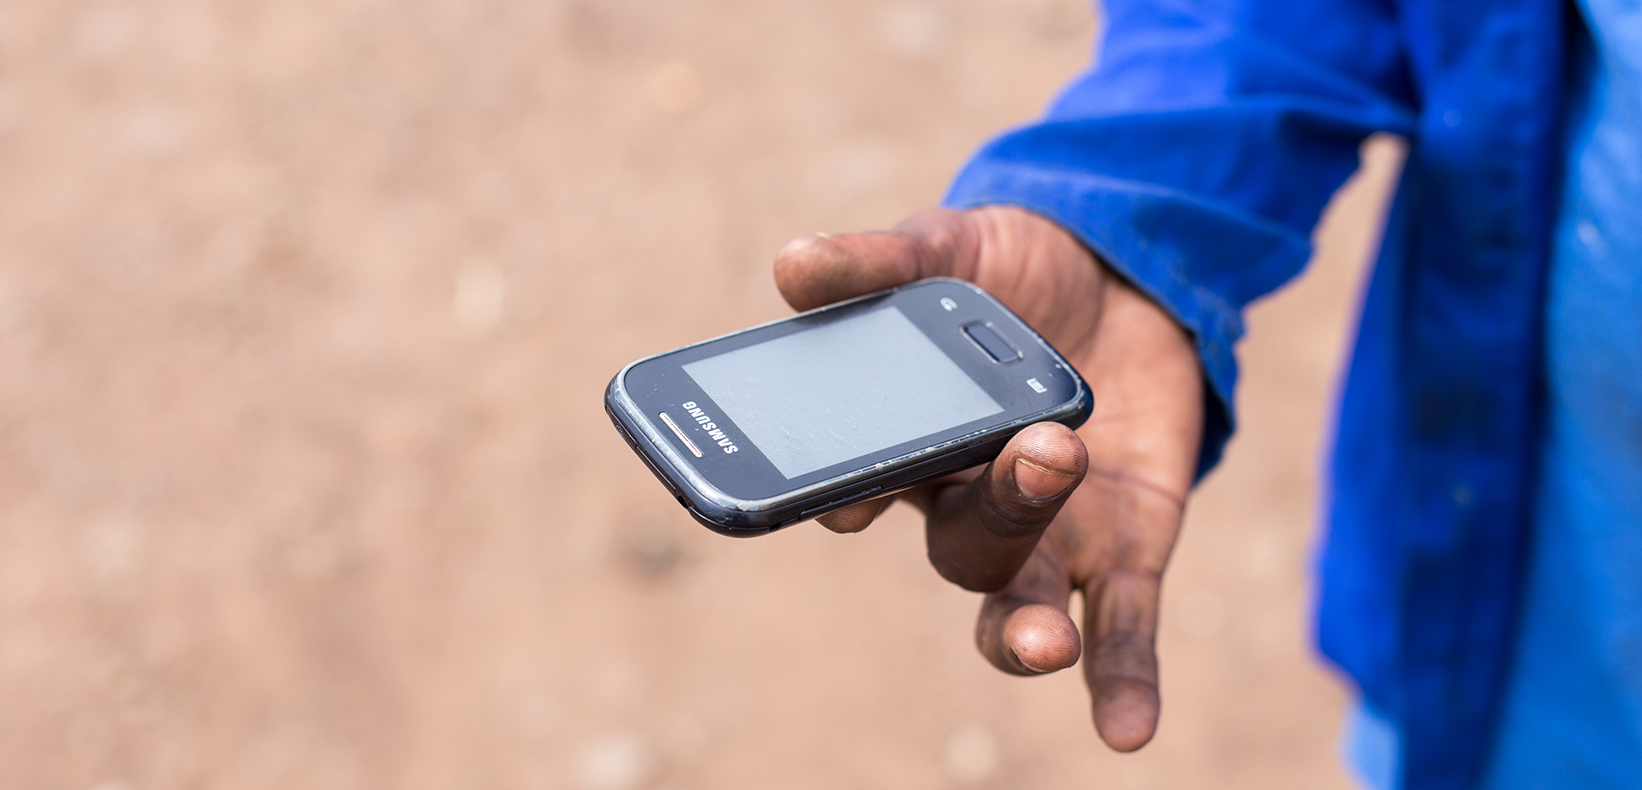 Building the future of mobile healthcare